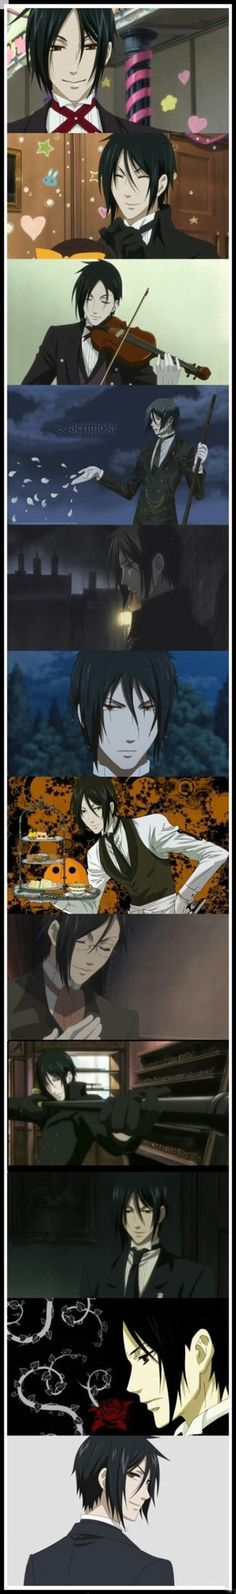 Black butler *pants* agghh my heart is slowly dying, but in a good way